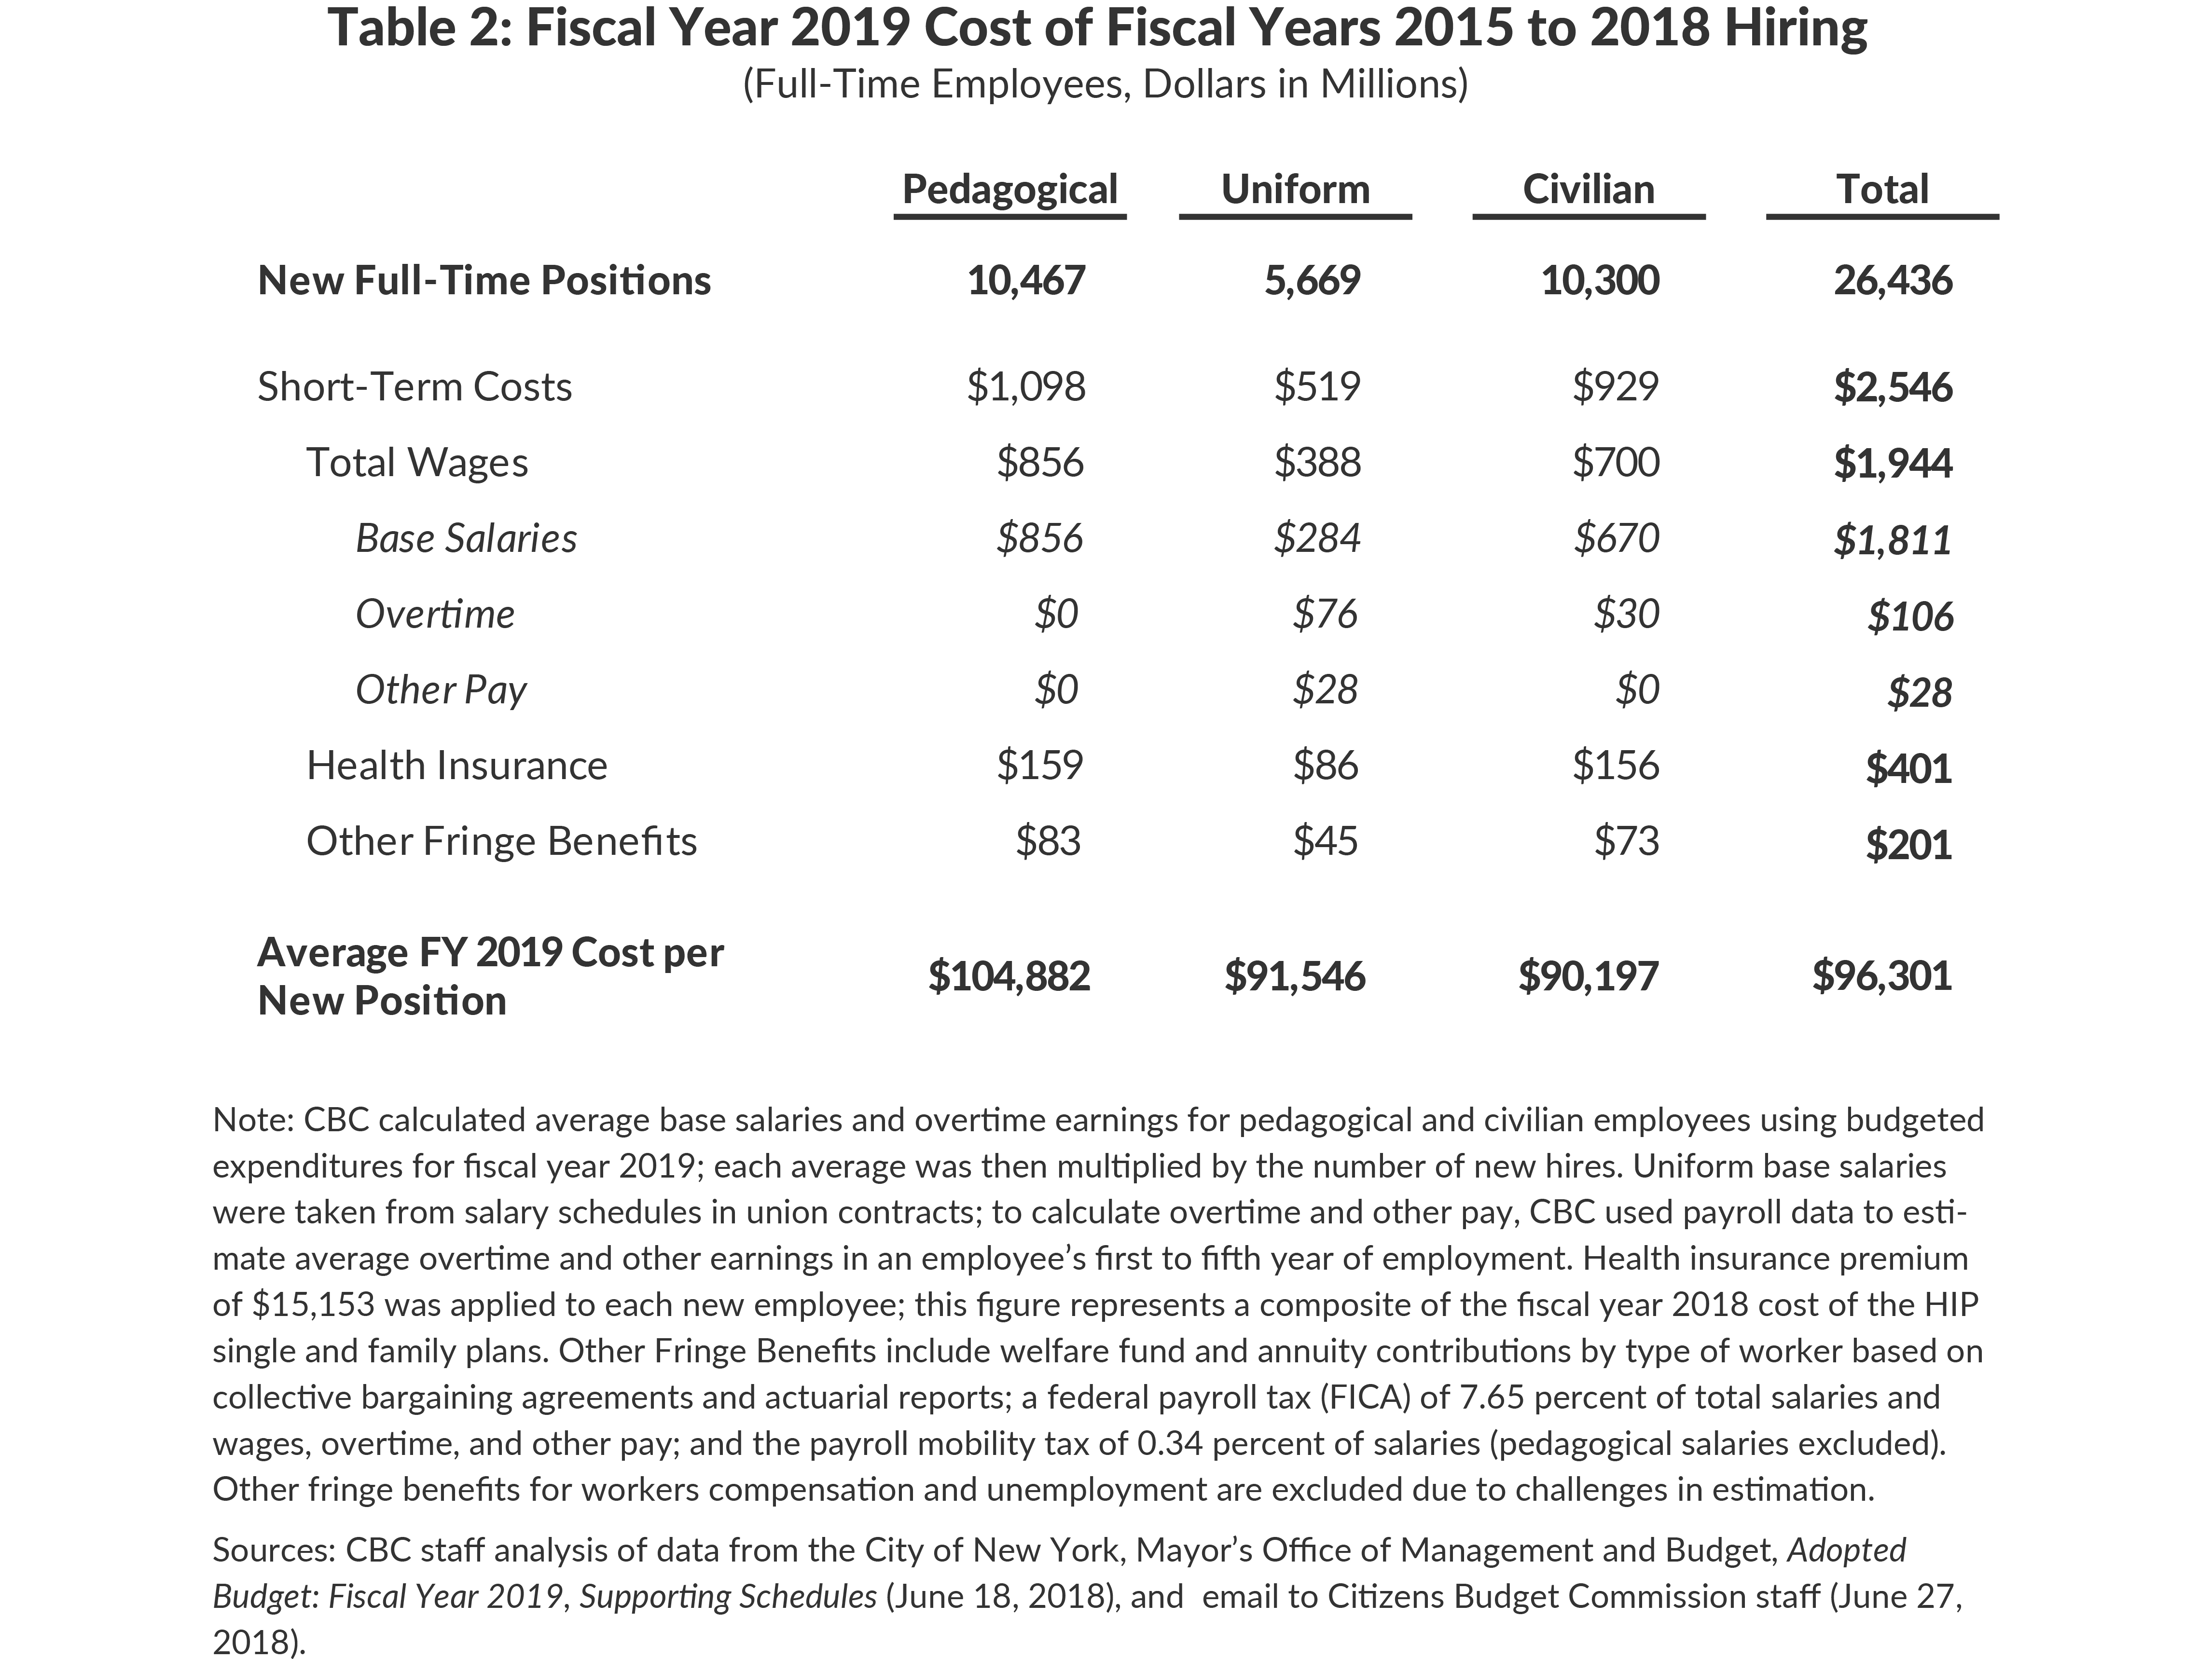 Table 2: Fiscal Year 2019 Cost of Fiscal Years 2015 to 2018 Hiring, Full-Time Employees